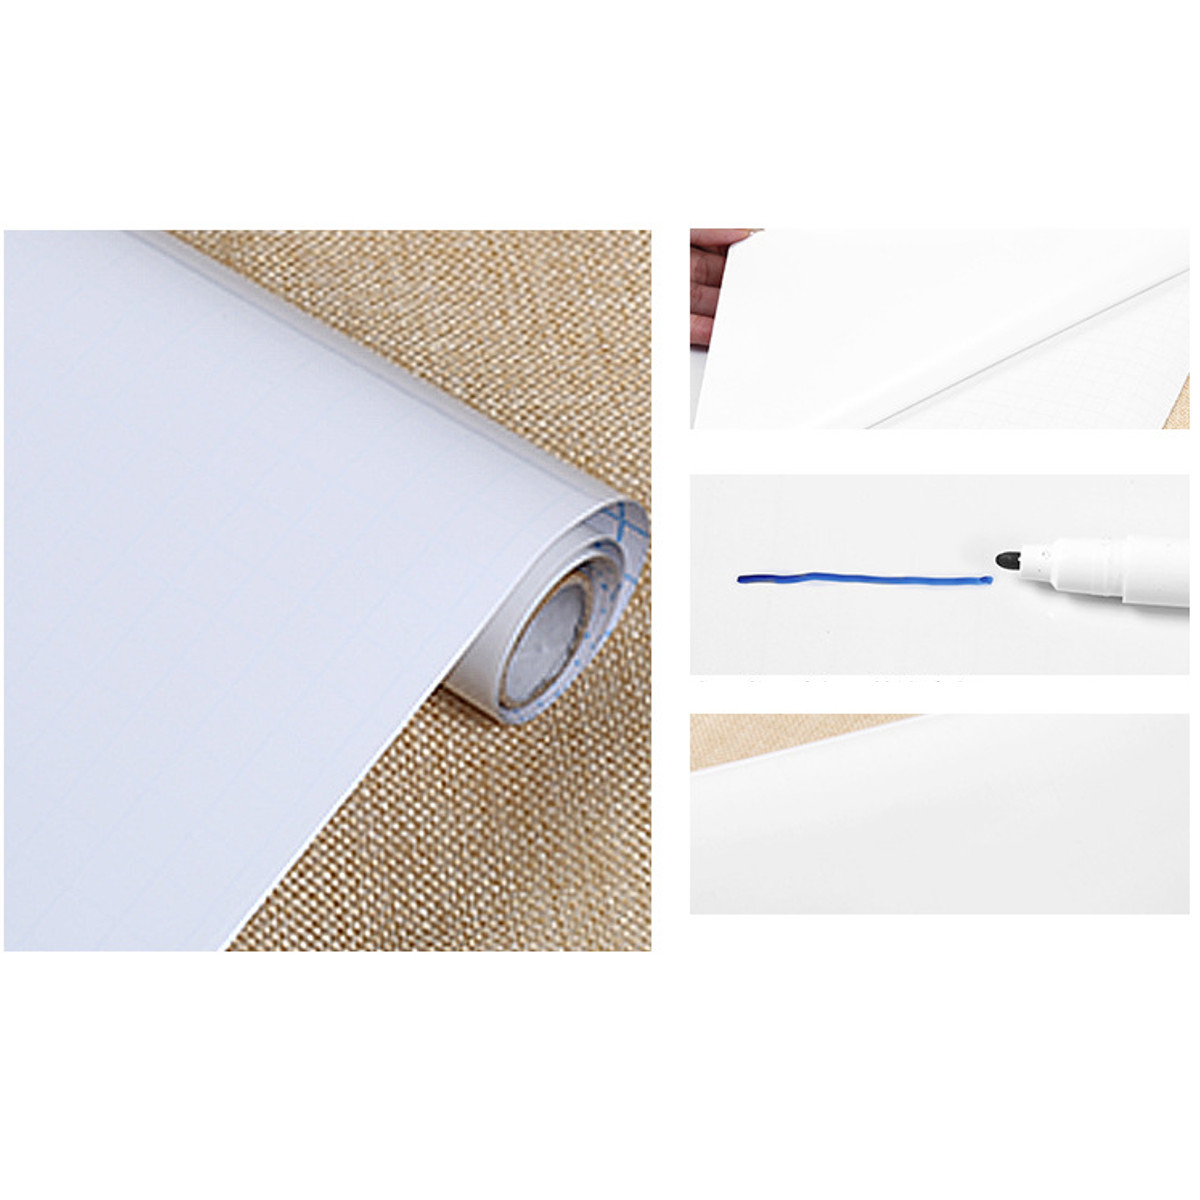 Whiteboard Sticker White Board Self-adhesive Writing Memo Board Removable Wall Sticker For Office School Home Wallpaper